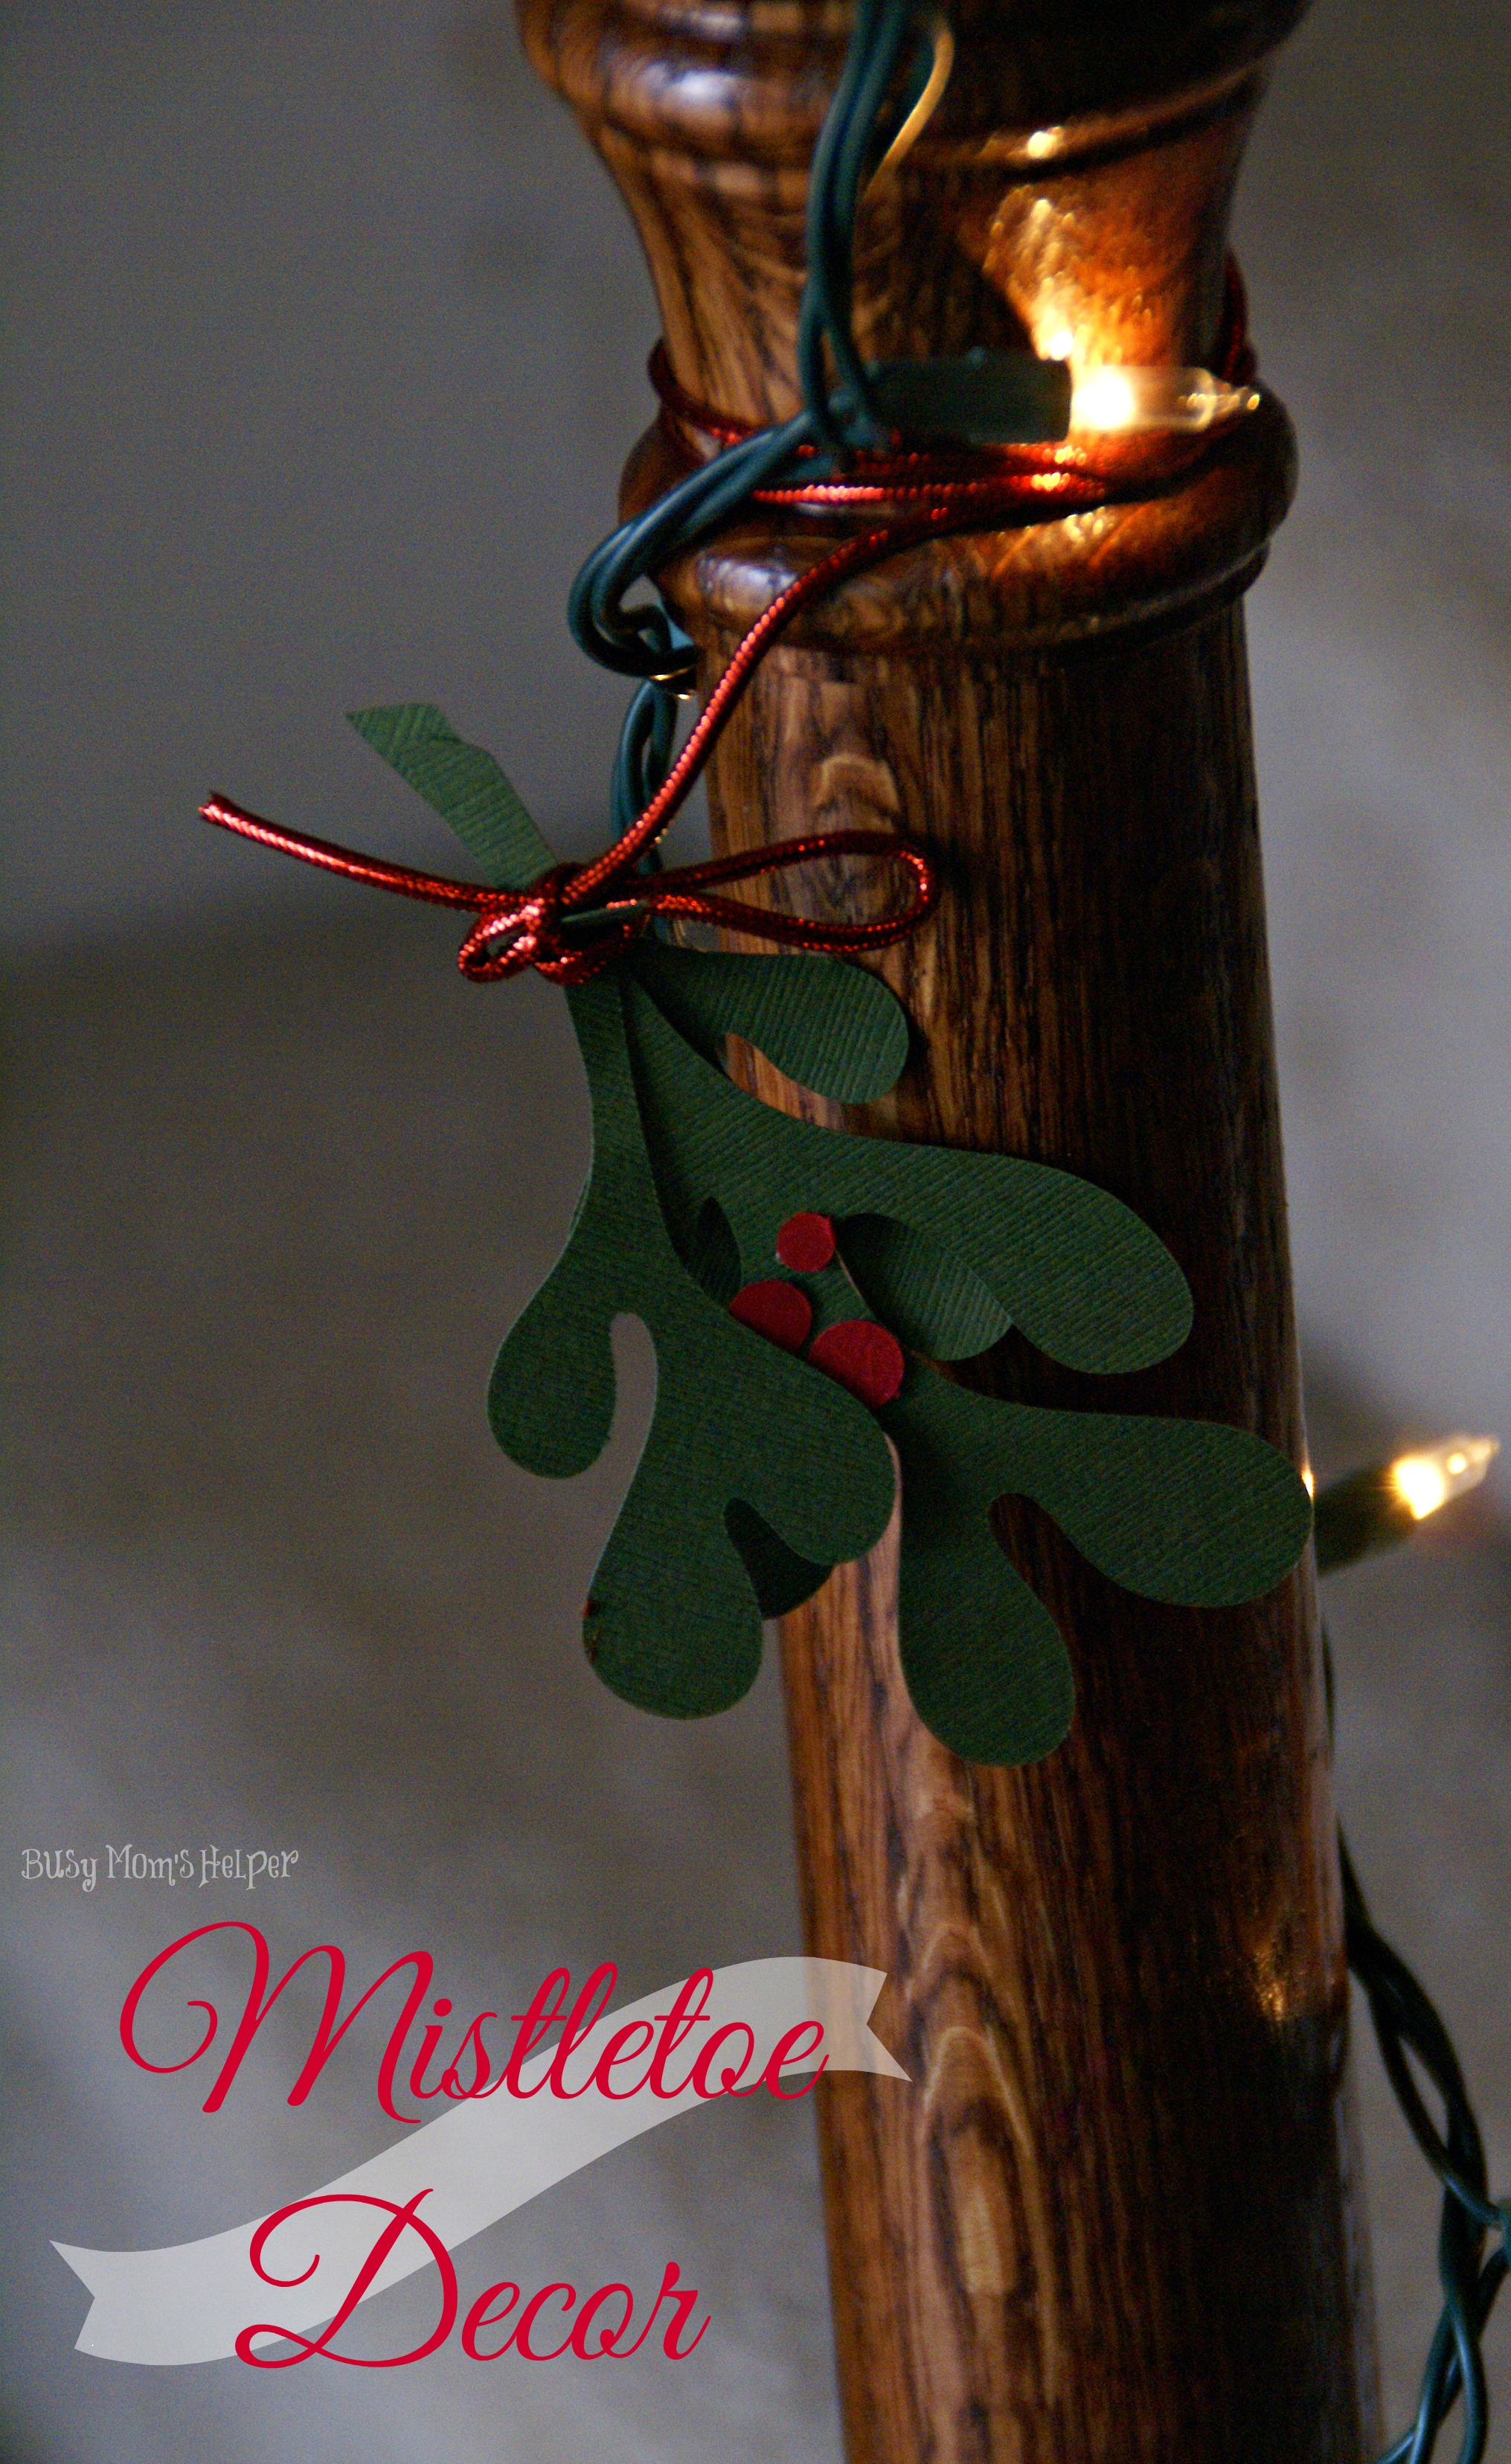 Diy mistletoe decor busy moms helper diy mistletoe decor with free printable pattern busy moms helper jeuxipadfo Images